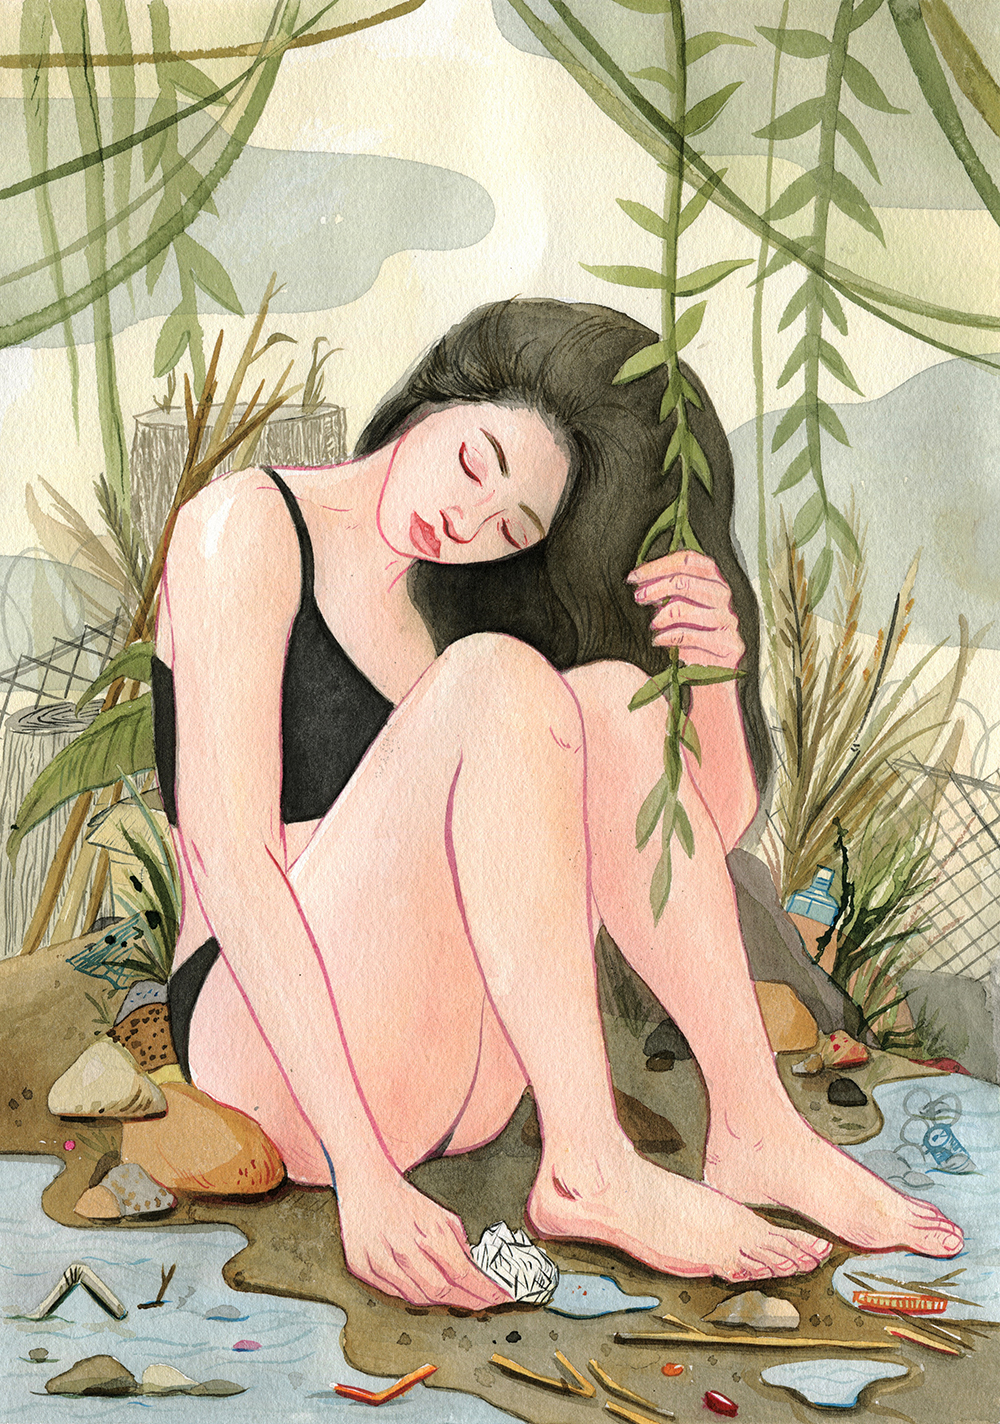 'Catching Water' from a series of paintings about environmentalism titled 'Mother Earth Feels'.